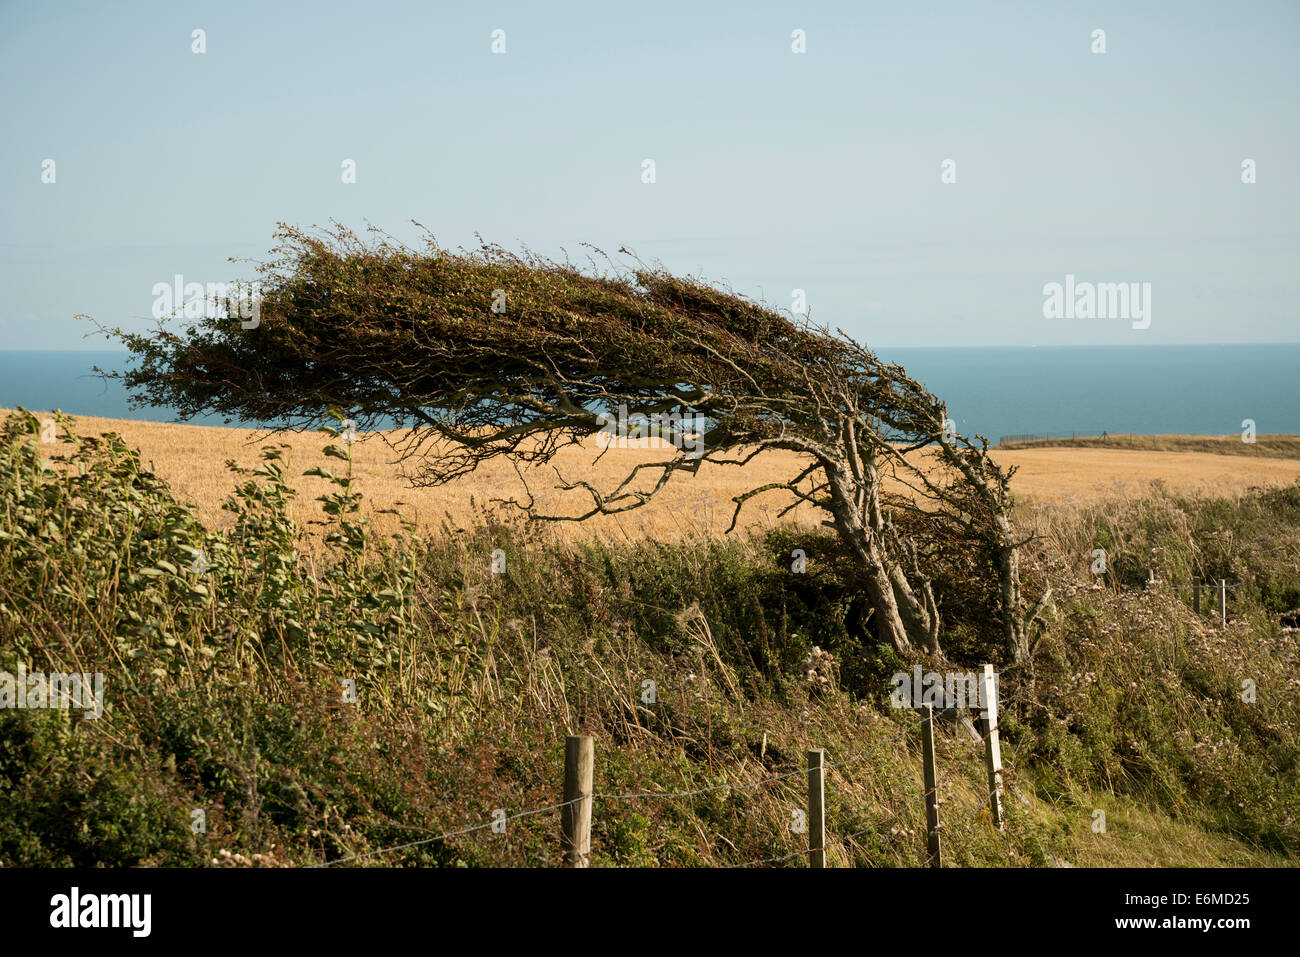 Wind blown or windswept tree near the southern coast of England. - Stock Image